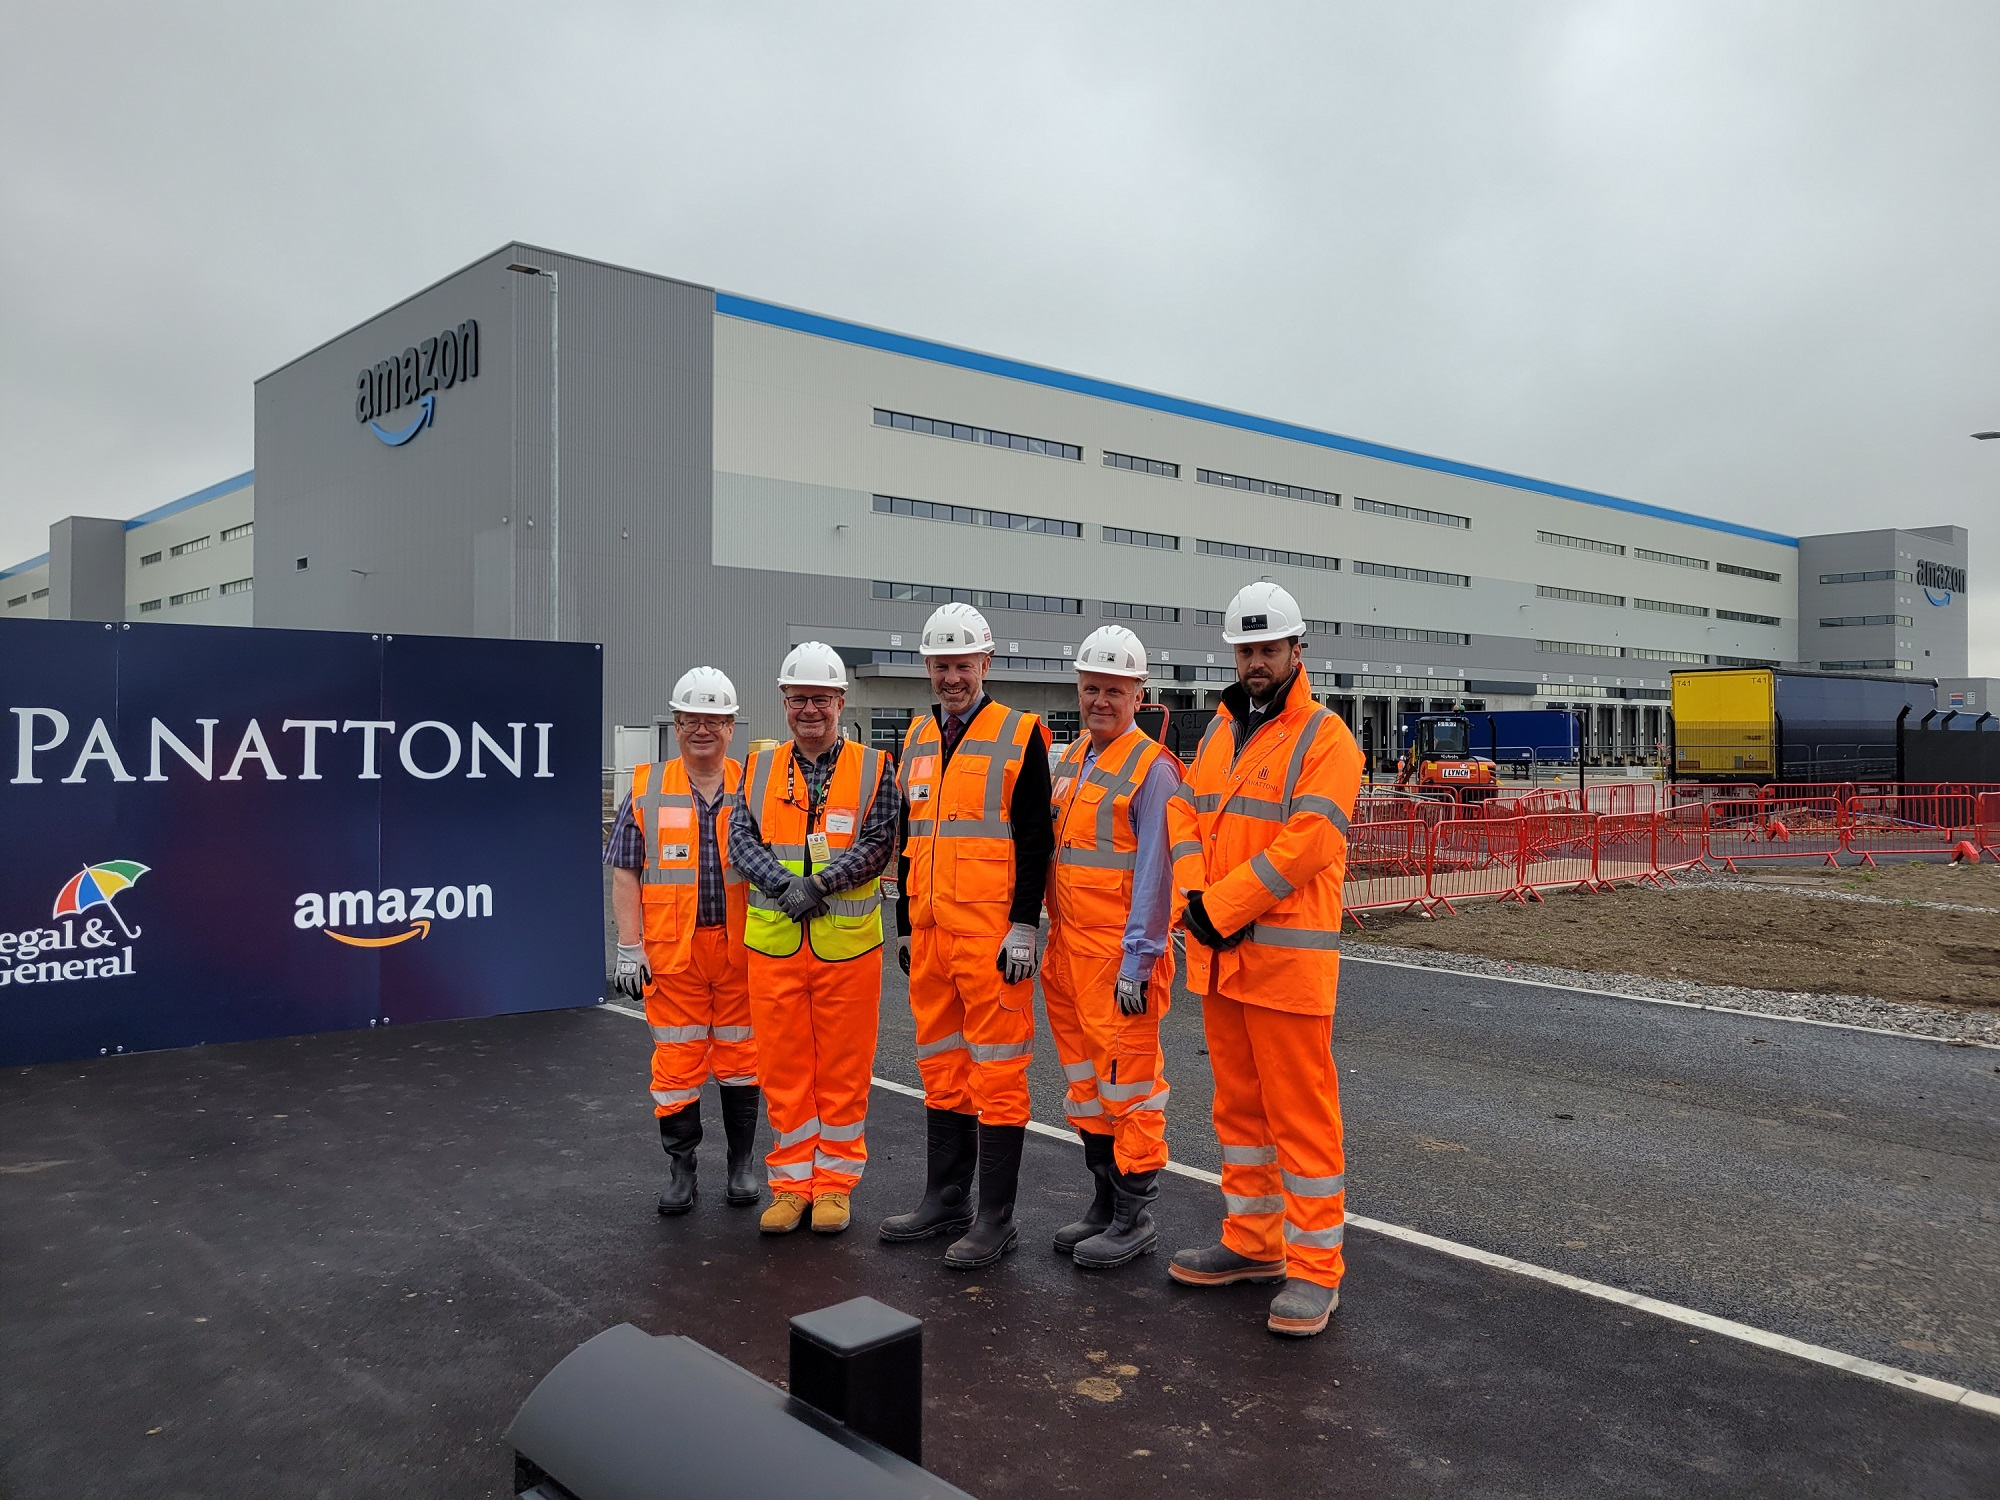 MP Welcomes Innovation And Investment At New Amazon Facility In Swindon